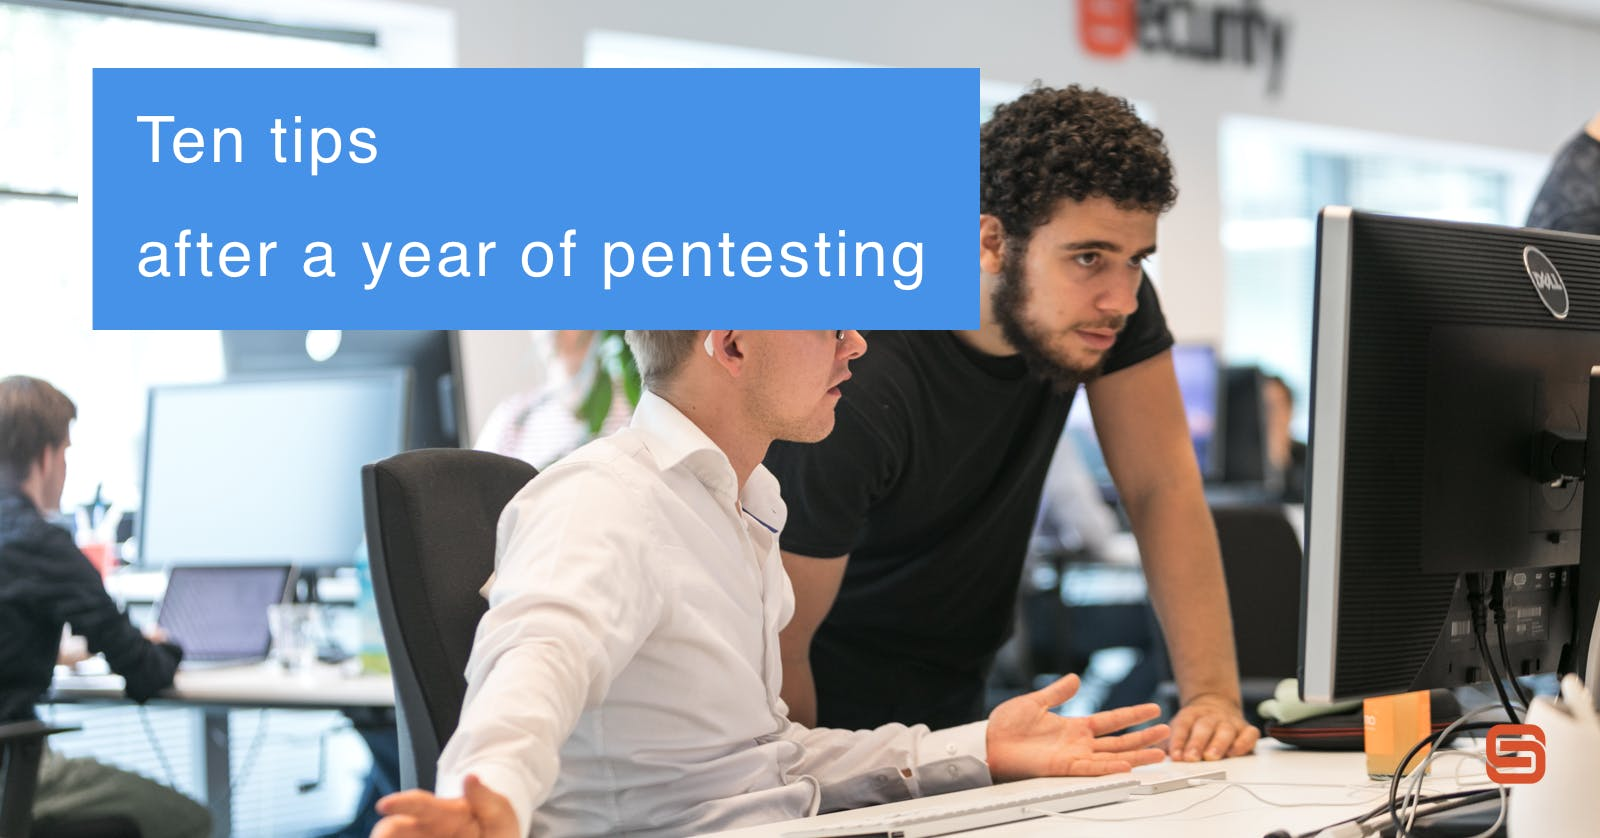 Ten tips after a year of pentesting